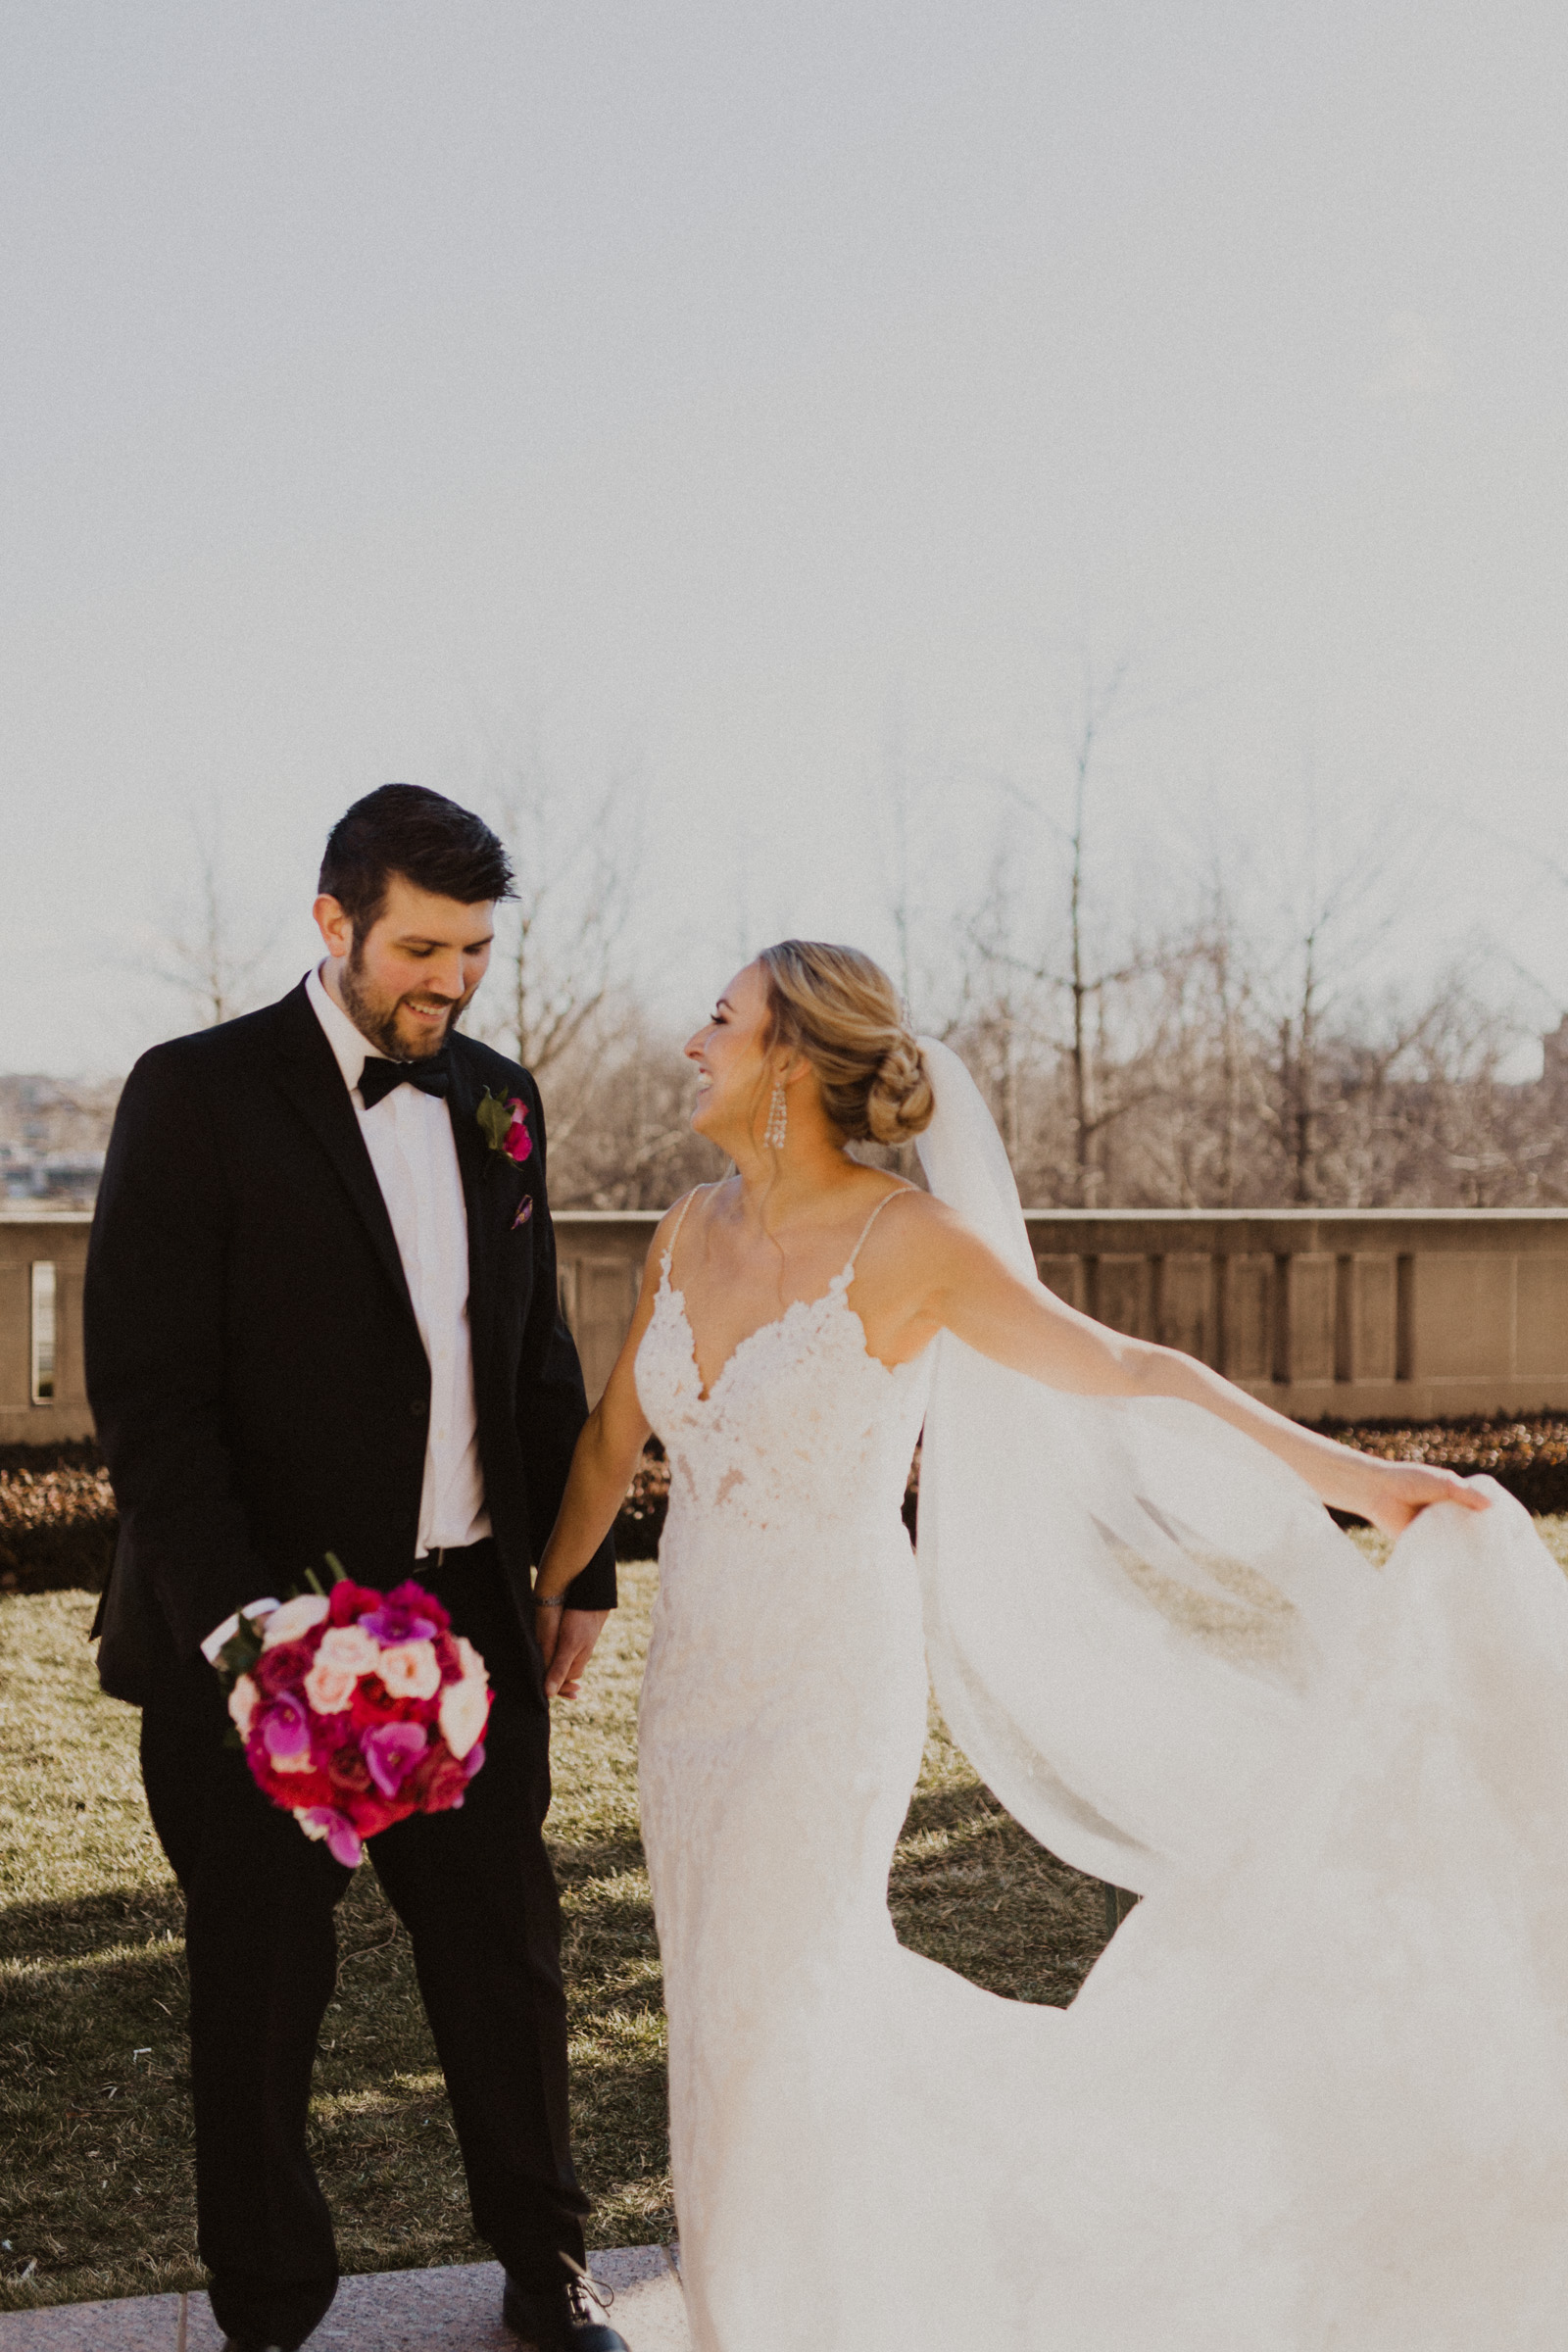 alyssa barletter photography nelson atkins museum intimate romantic spring wedding pilgrim chapel kcmo-23.jpg